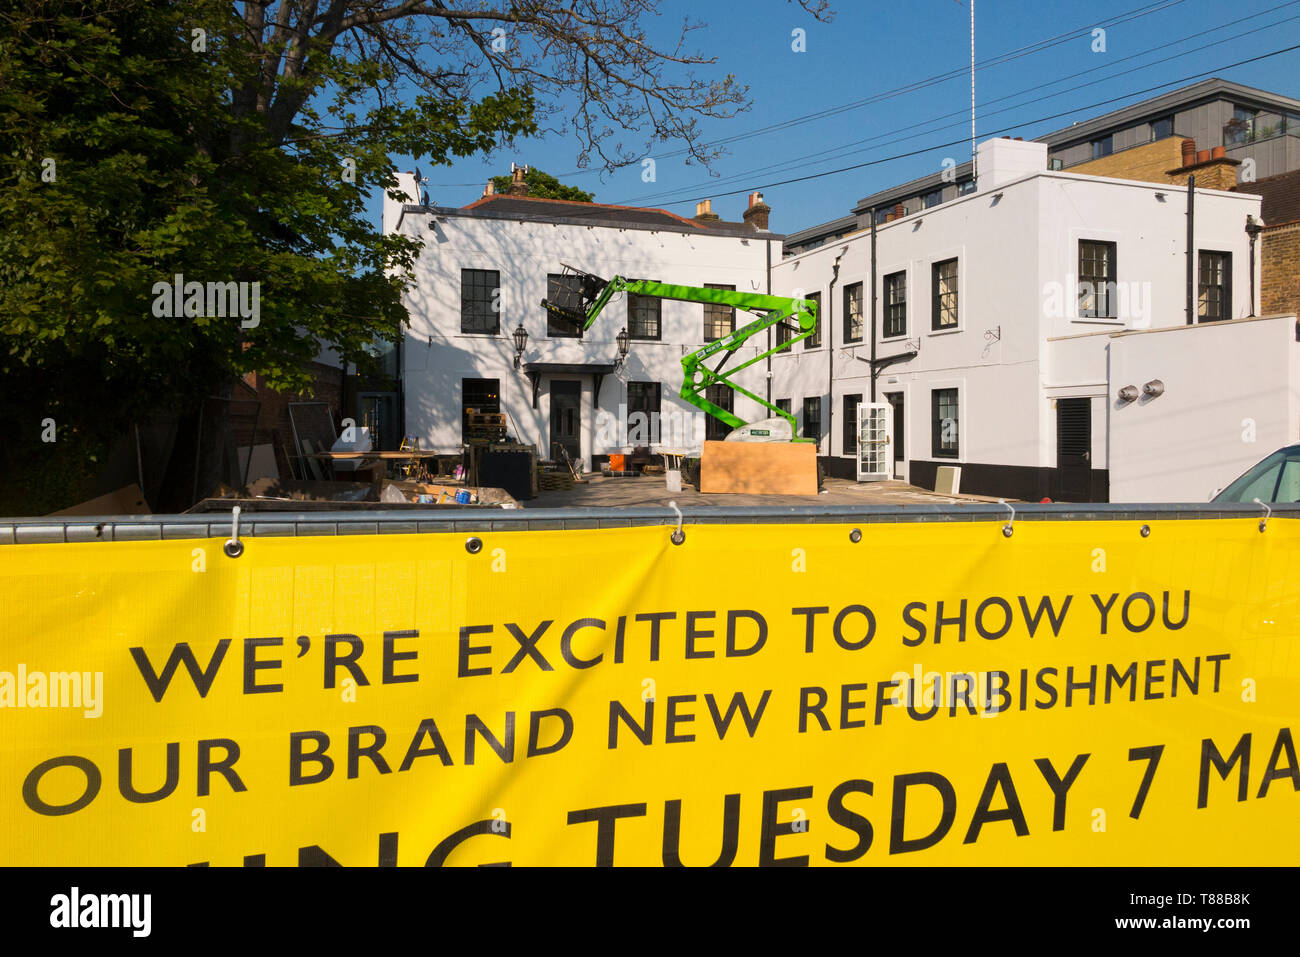 The Anglers pub / public house on Broom Road in Teddington while undergoing a refurbishment. Teddington, Middlesex. England UK (108) - Stock Image